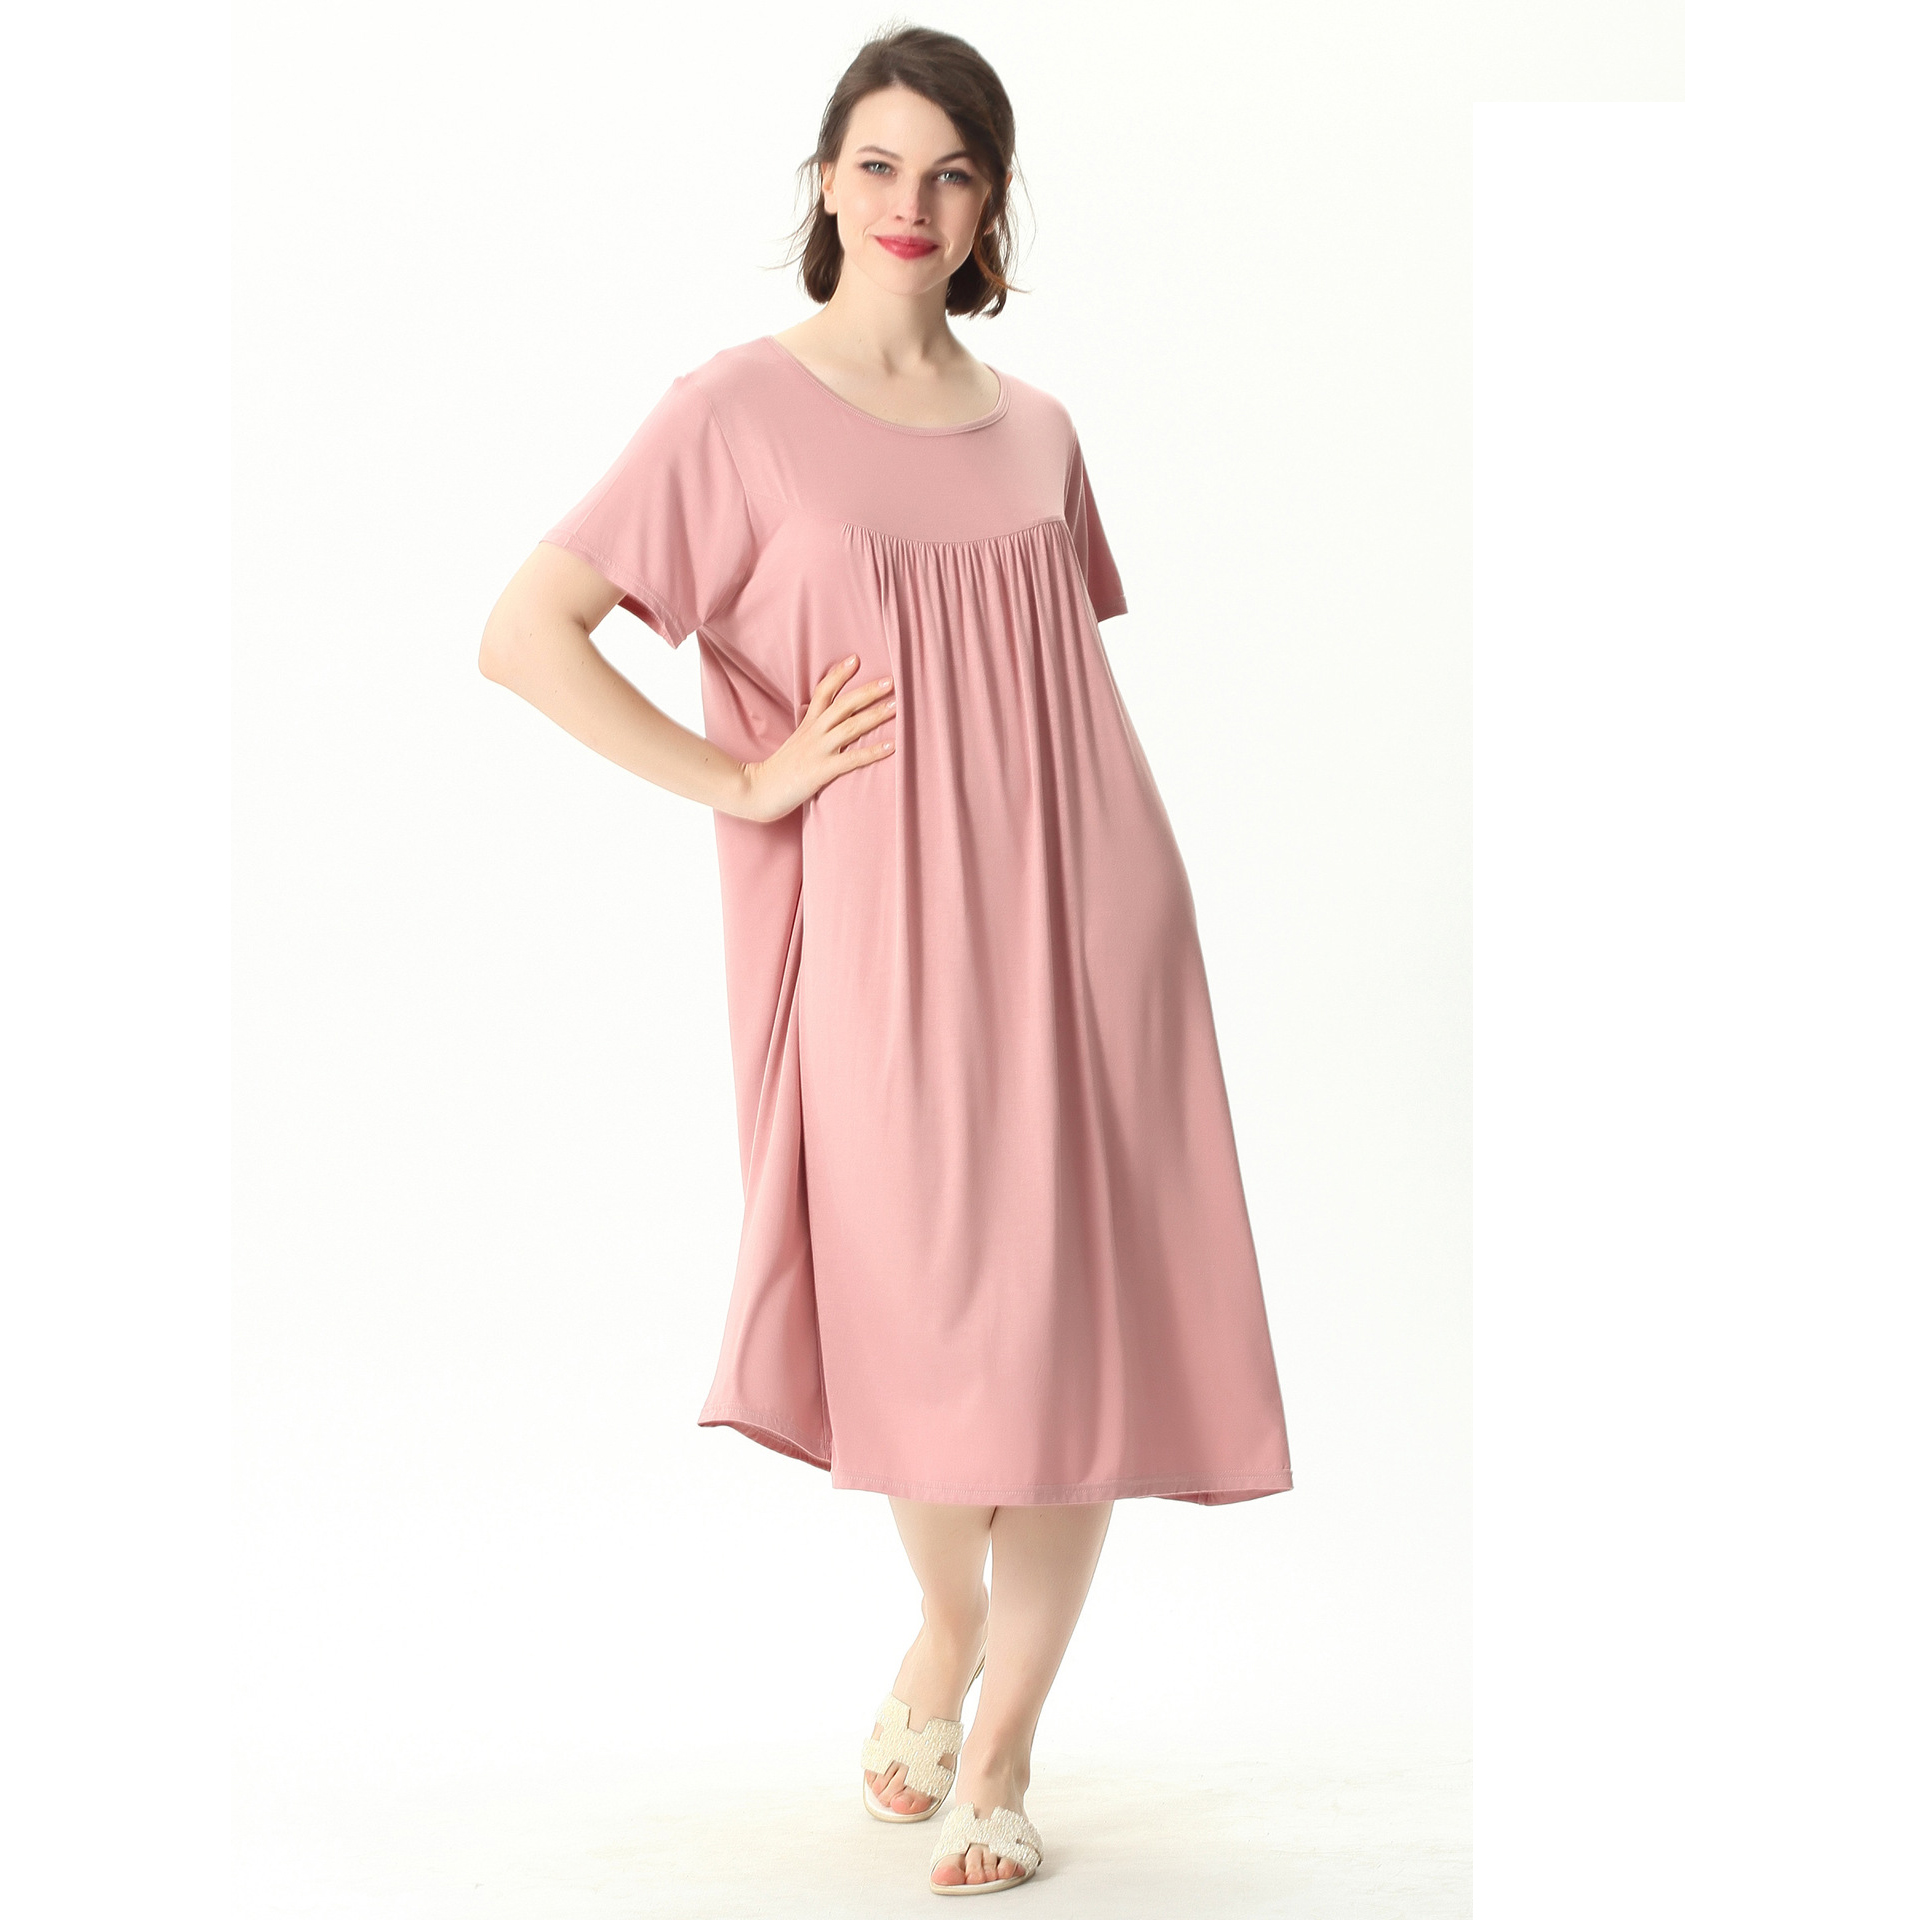 Plus Size 7XL Spring Summer Women Comfortable Nightdress Short Sleeve Nightshirt Home Dress Loose Solid Nightgowns